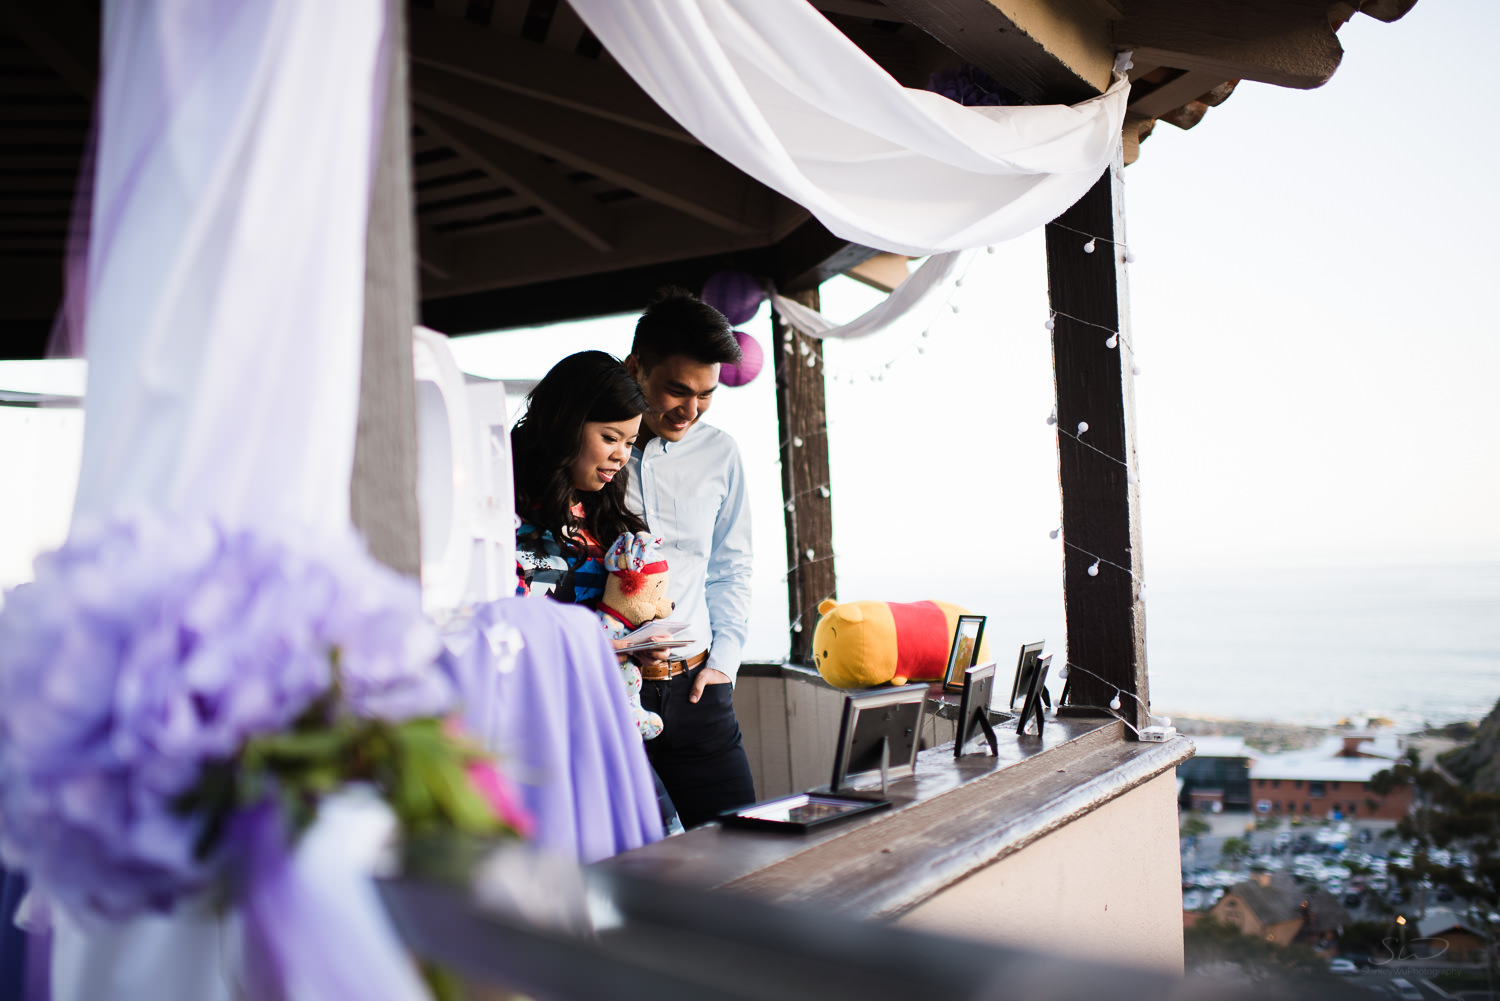 Reading love letters. Cliffside proposal & engagement in Dana Point | Stanley Wu Photography Portrait & Wedding Photographer | Los Angeles, Orange County, Southern California